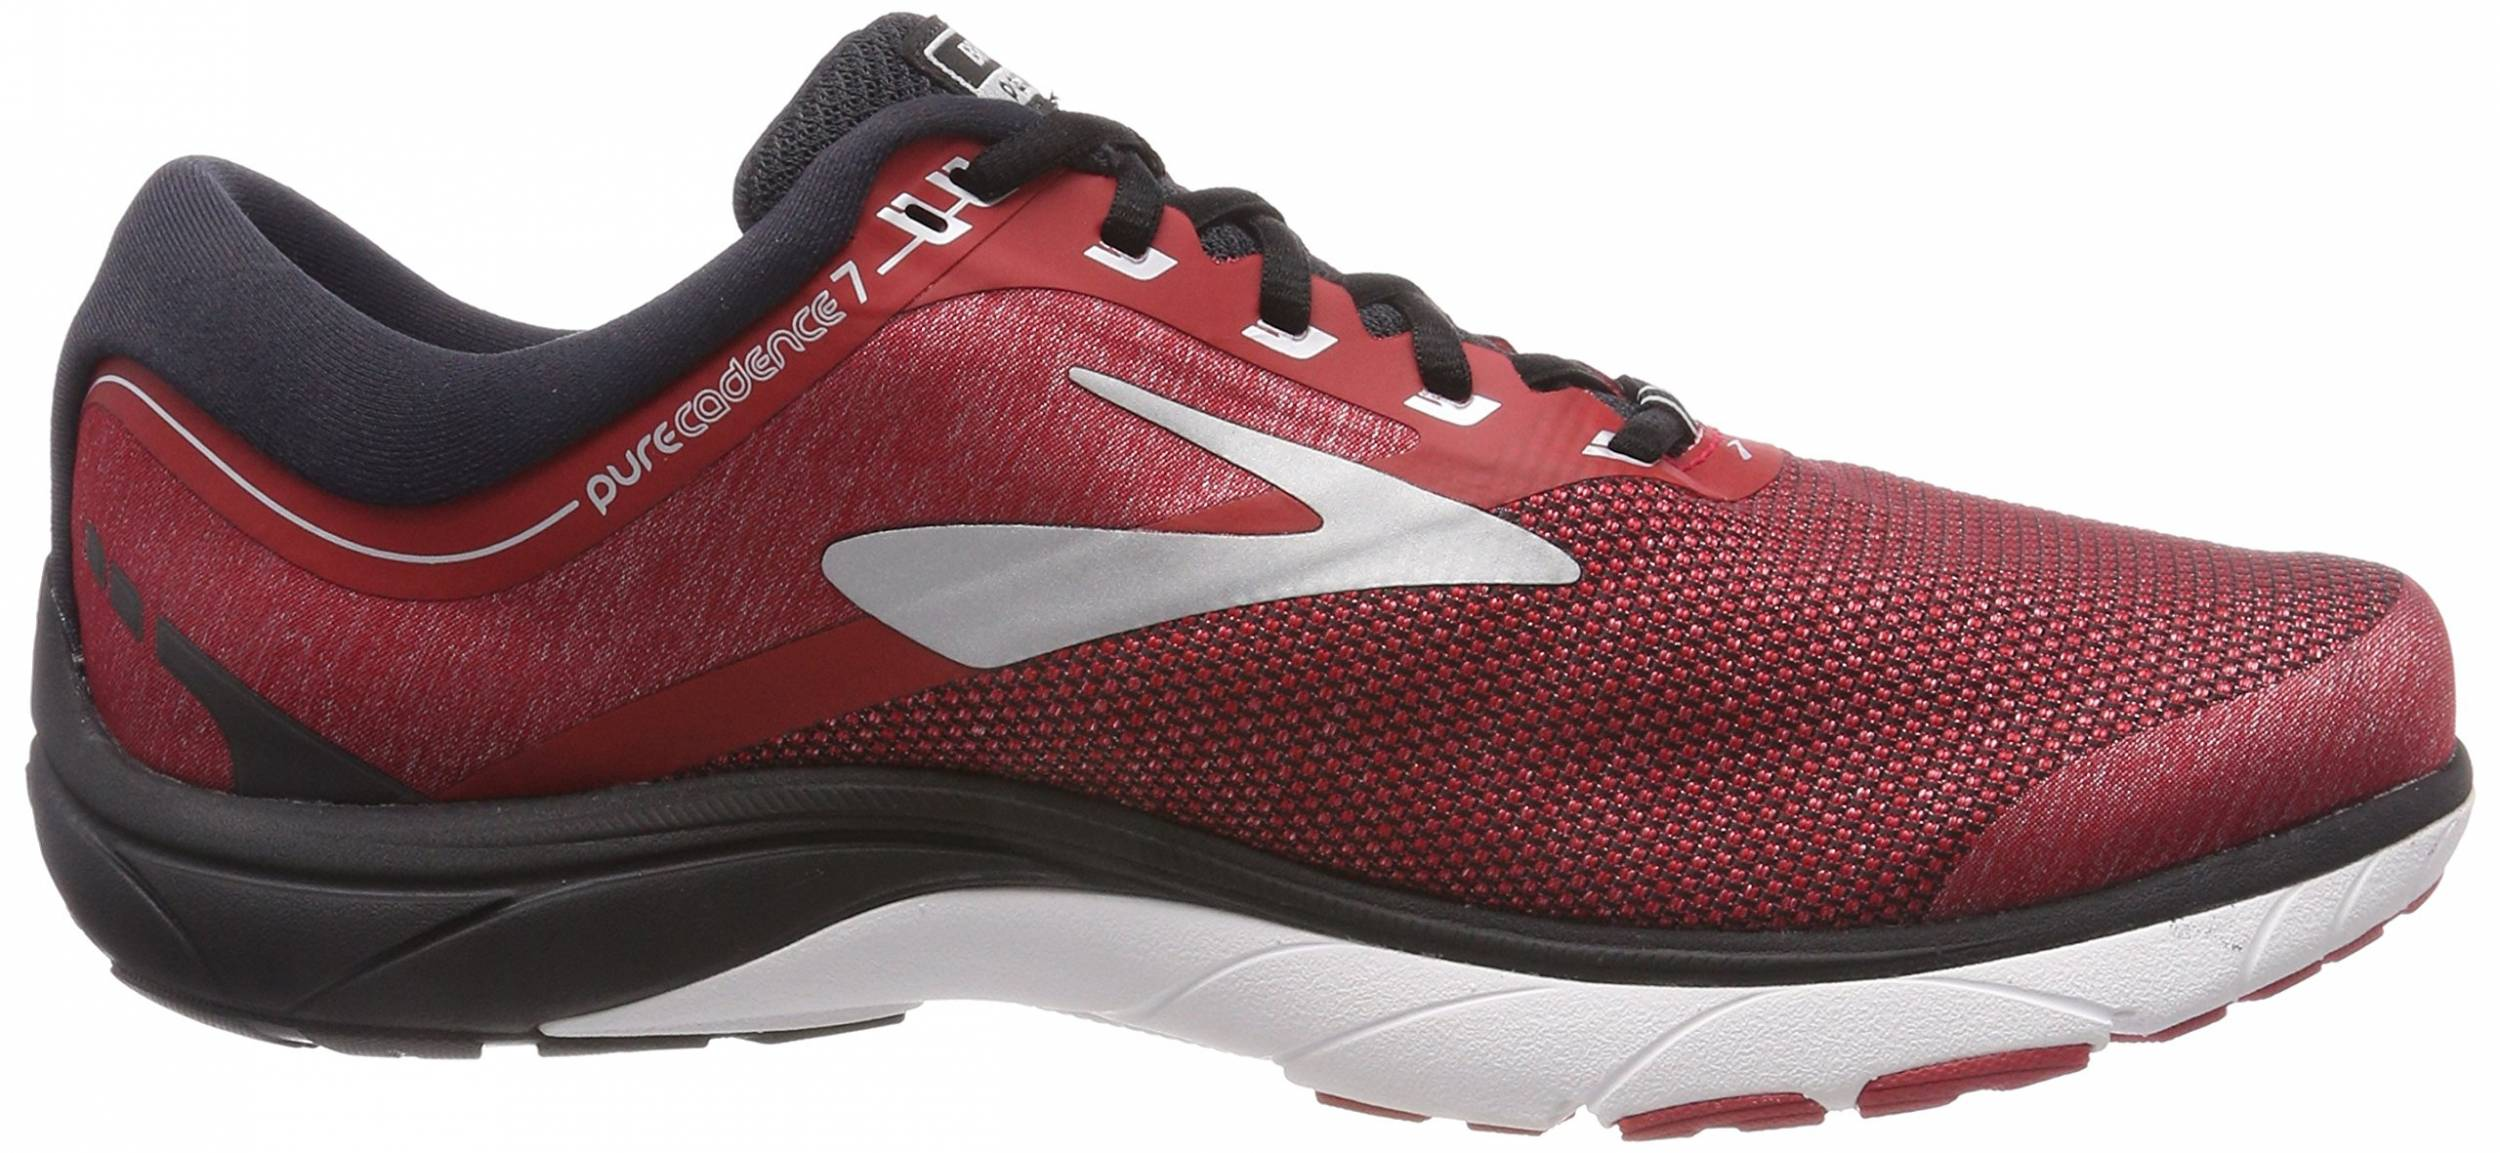 Save 24 On Brooks Low Drop Running Shoes 21 Models In Stock Runrepeat